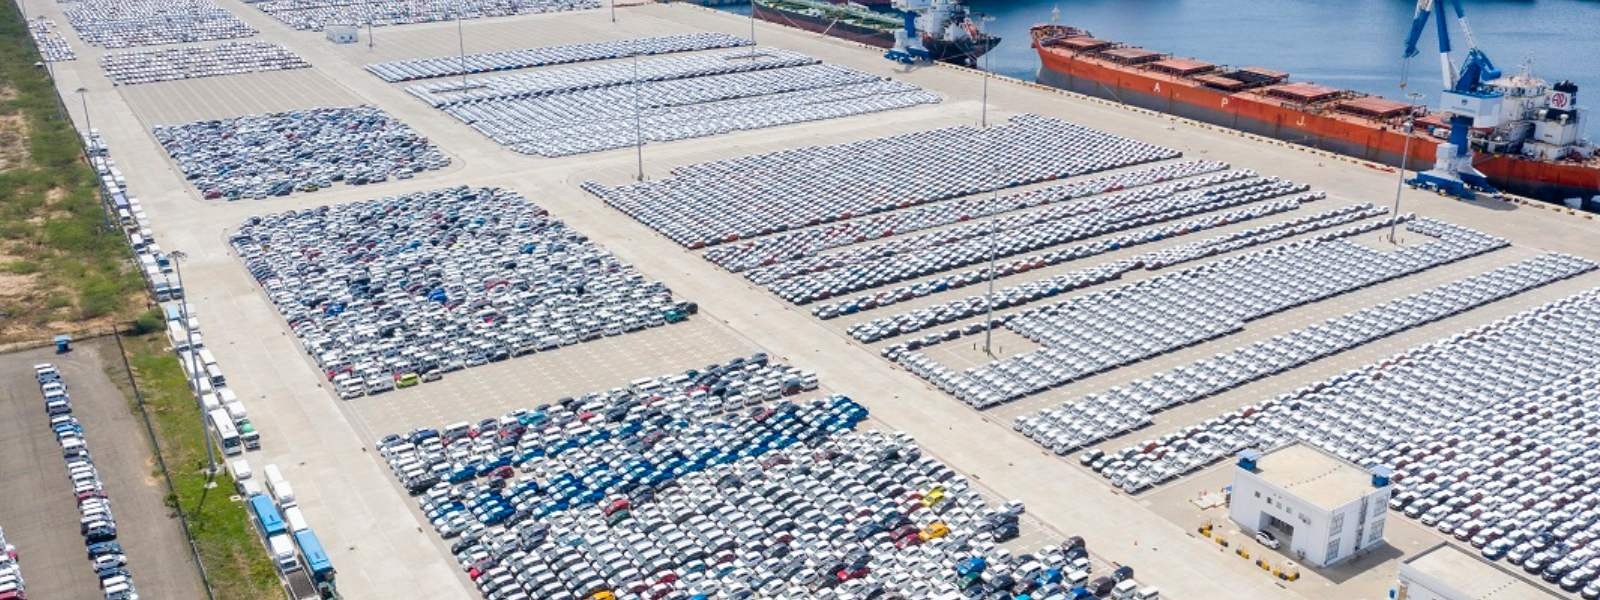 Vehicle clearance at Hambantota International Port at a snail's pace